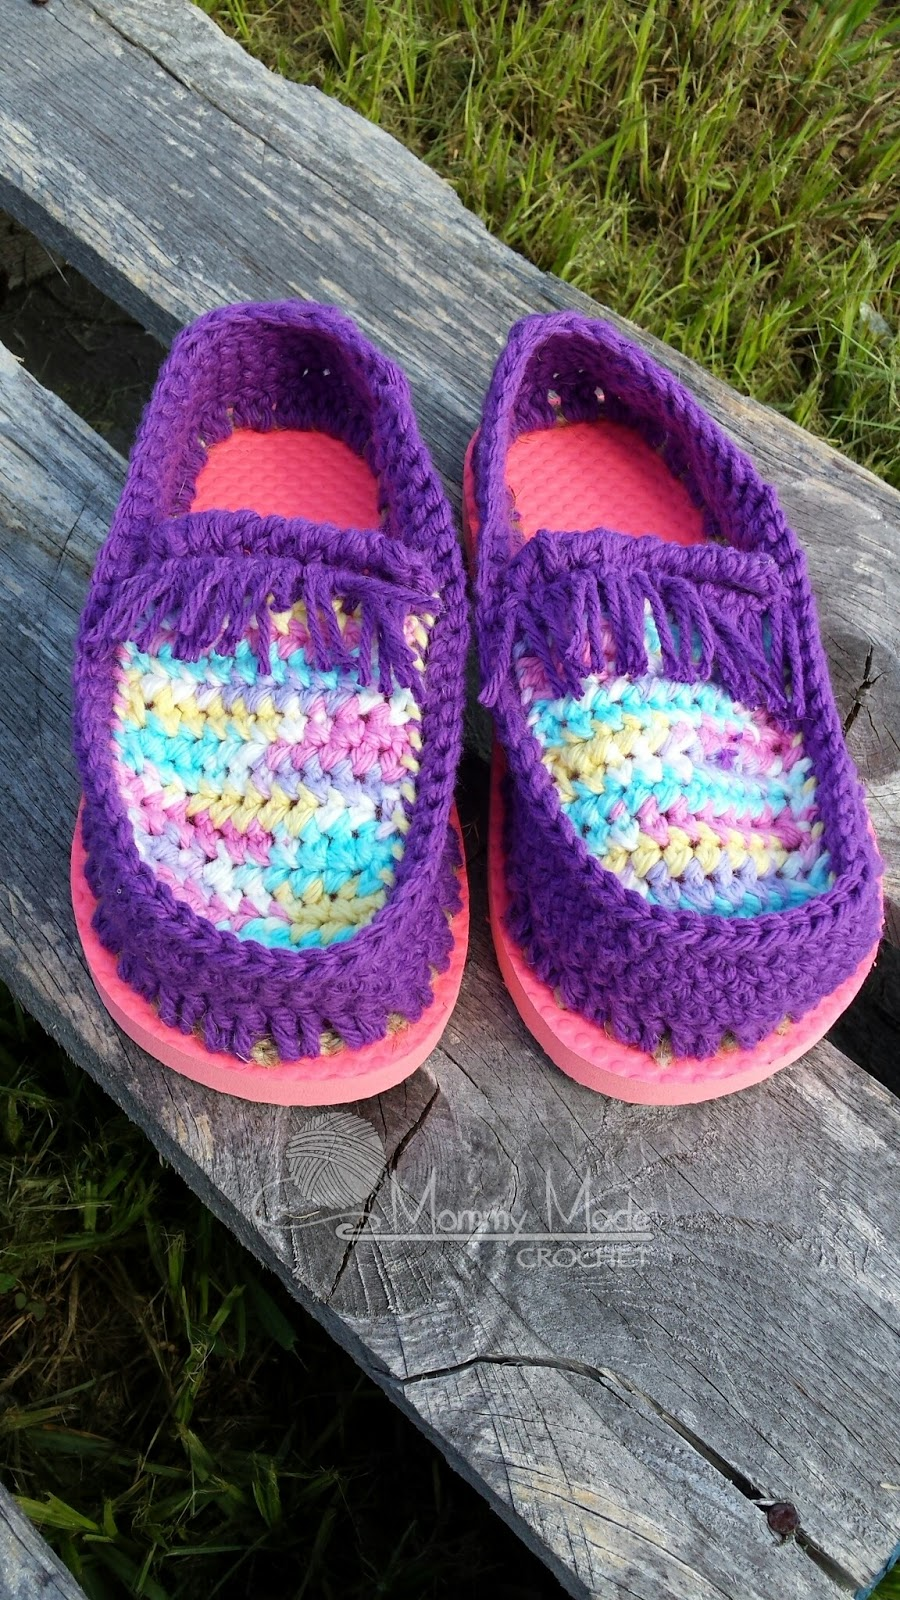 Mommy Made Crochet: Cotton Moccasin Shoes with Flip Flop Soles ...